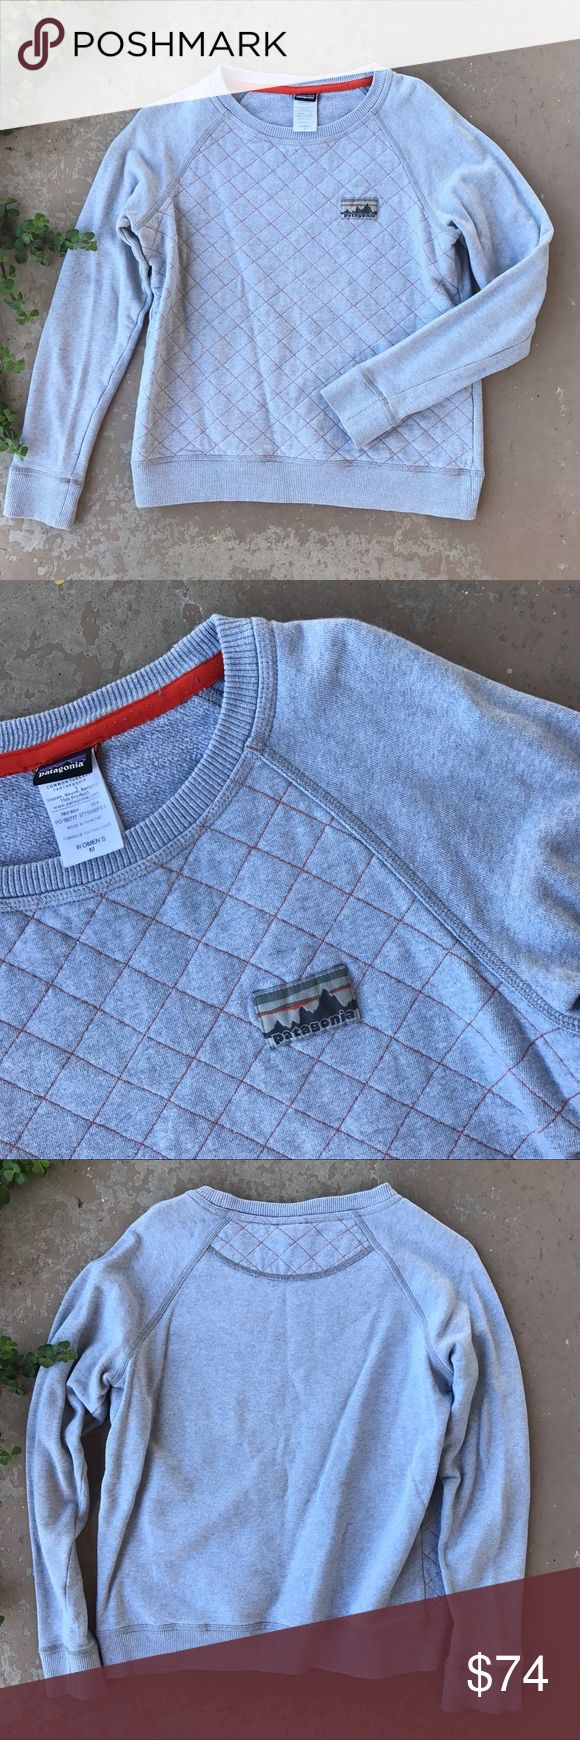 Patagonia Crew Quilted Gray Pullover Sweater Patagonia gray quilted pullover with orange contrast threading. In excellent condition. Size medium. 50 cotton/50 organic cotton. Patagonia Sweaters Crew & Scoop Necks